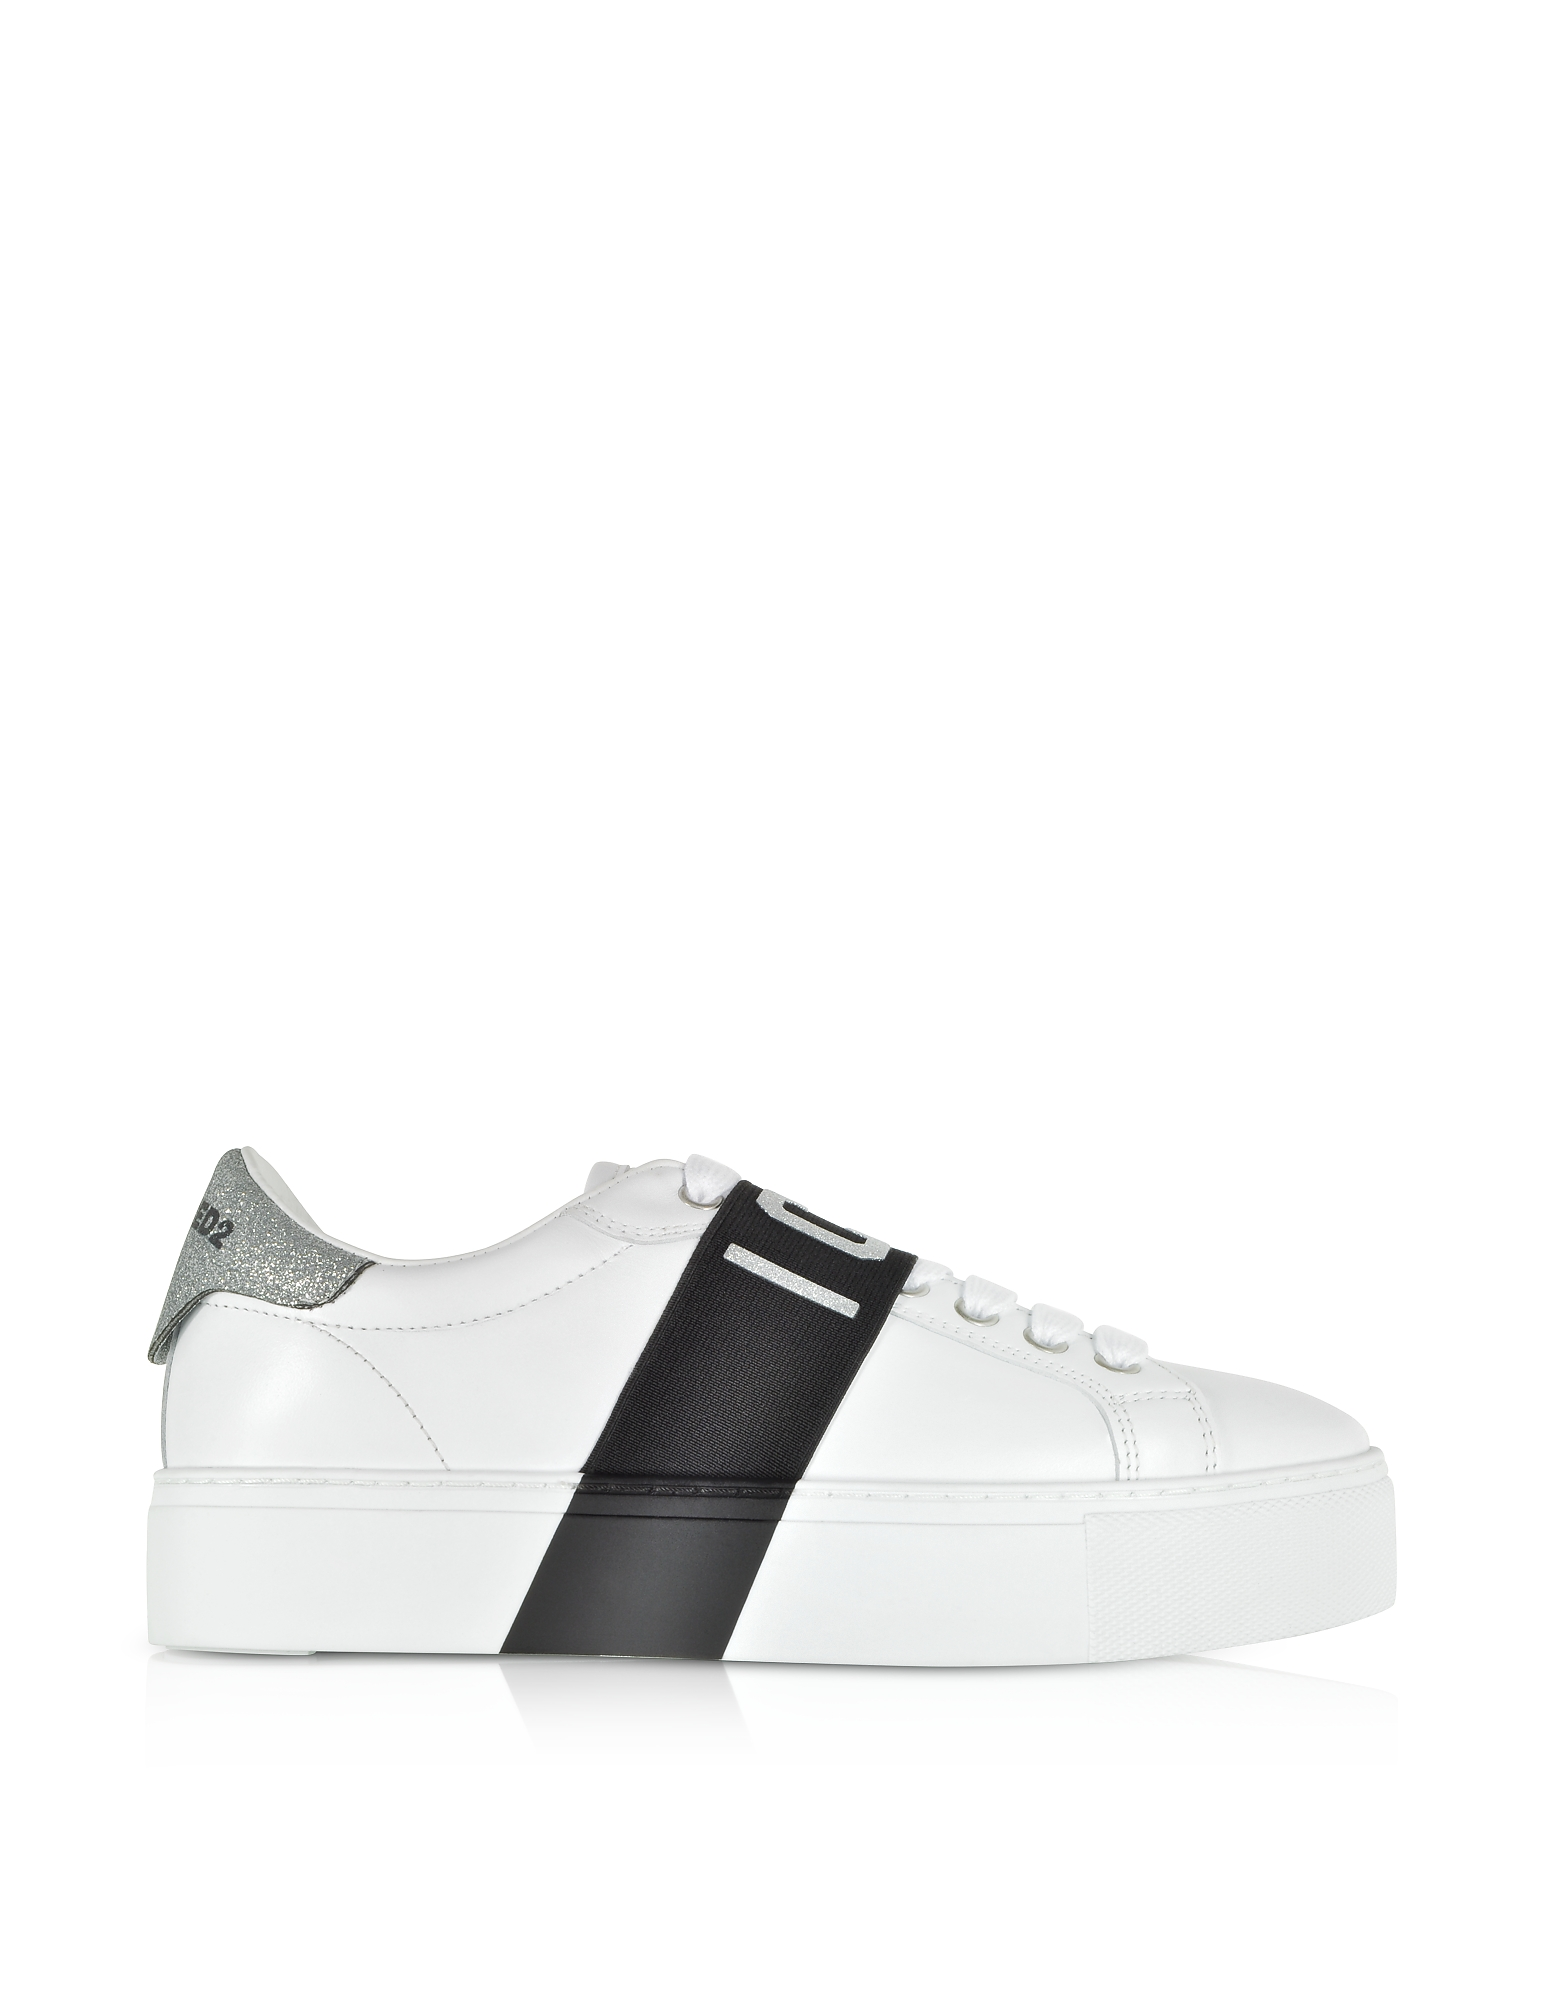 Low Top Leather and Glitter Women's Sneakers